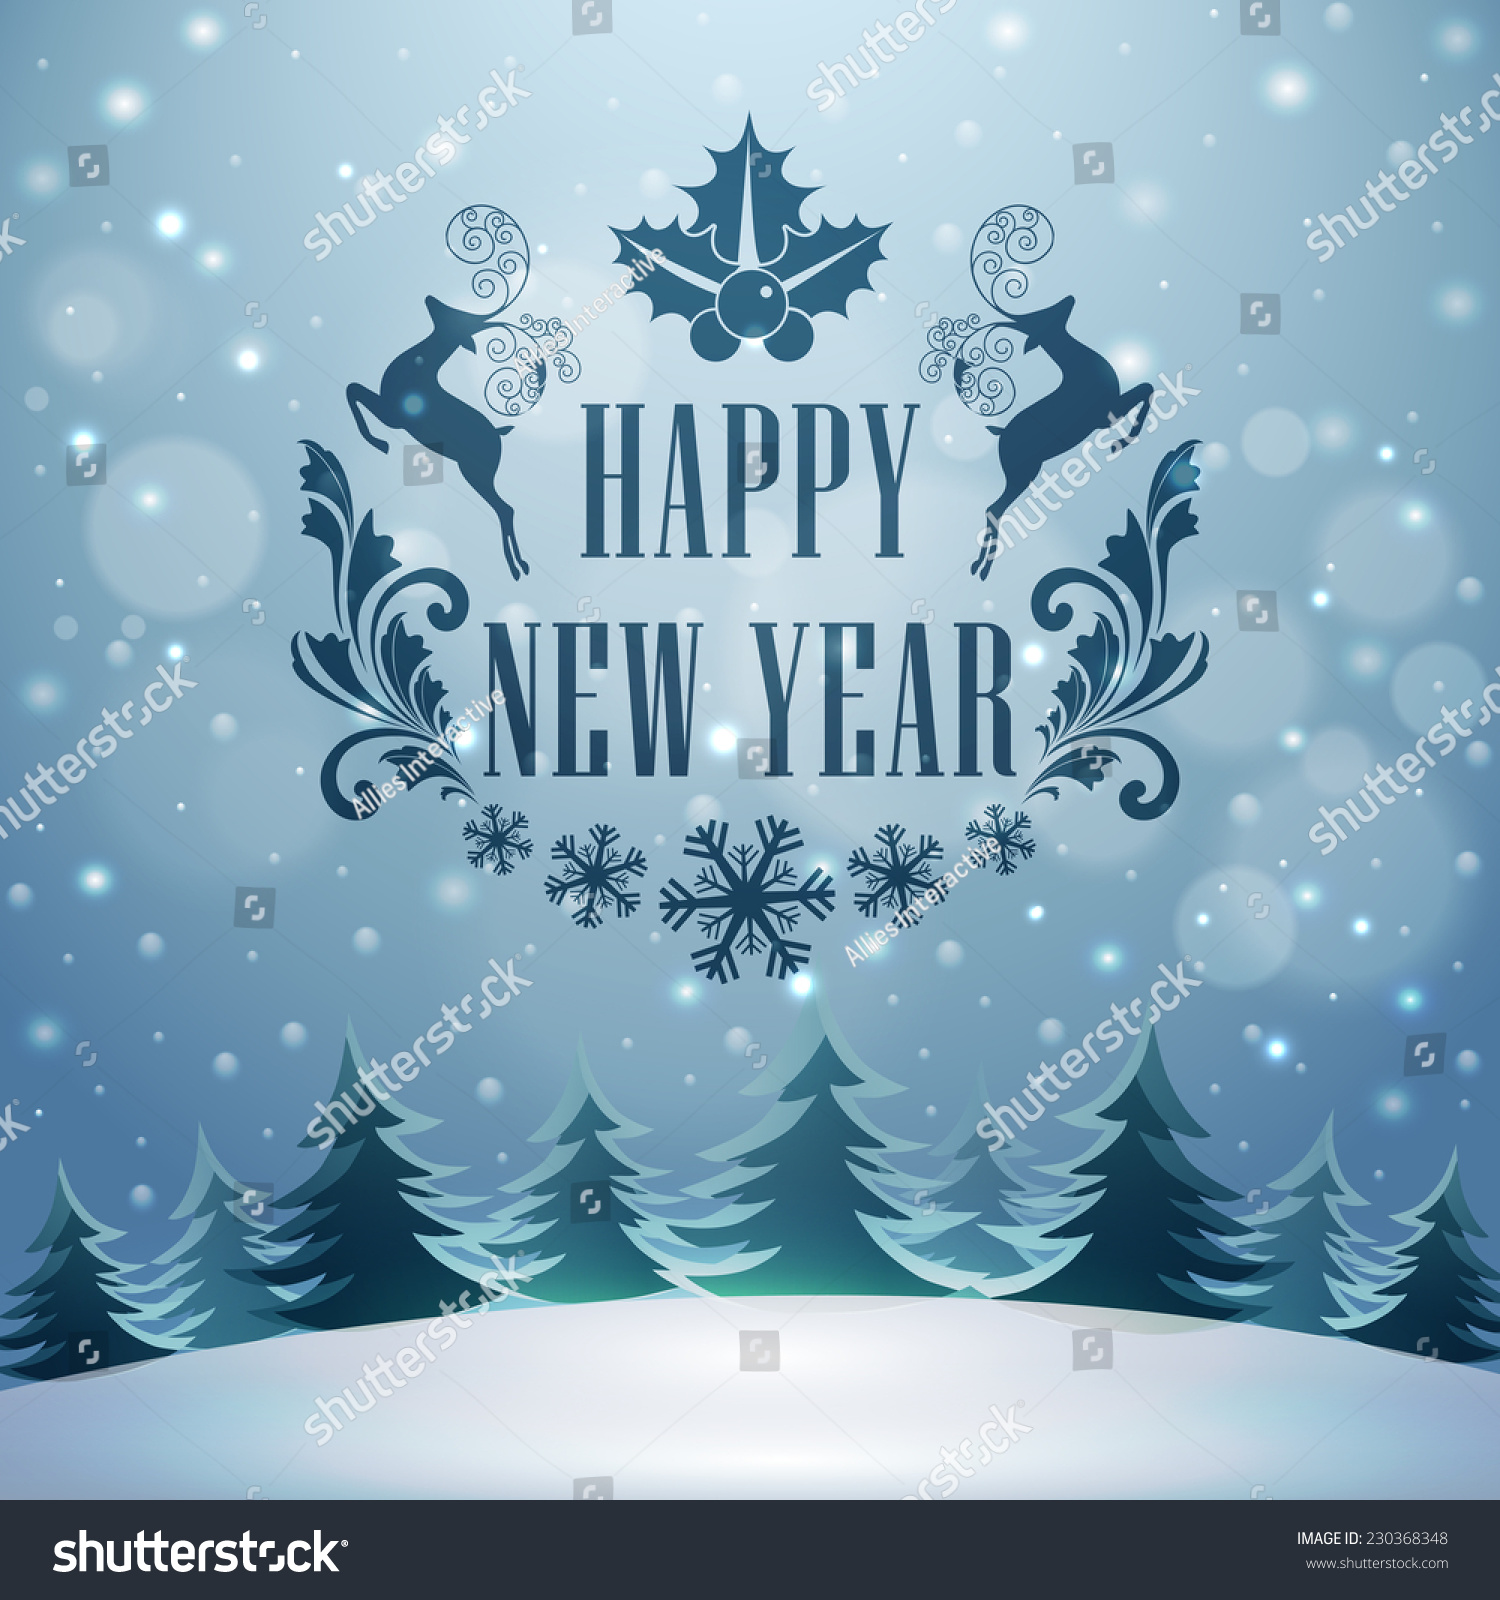 happy new year celebrations stylish text stock vector 230368348 happy new year celebrations stylish text and reindeer s on winter night background can be